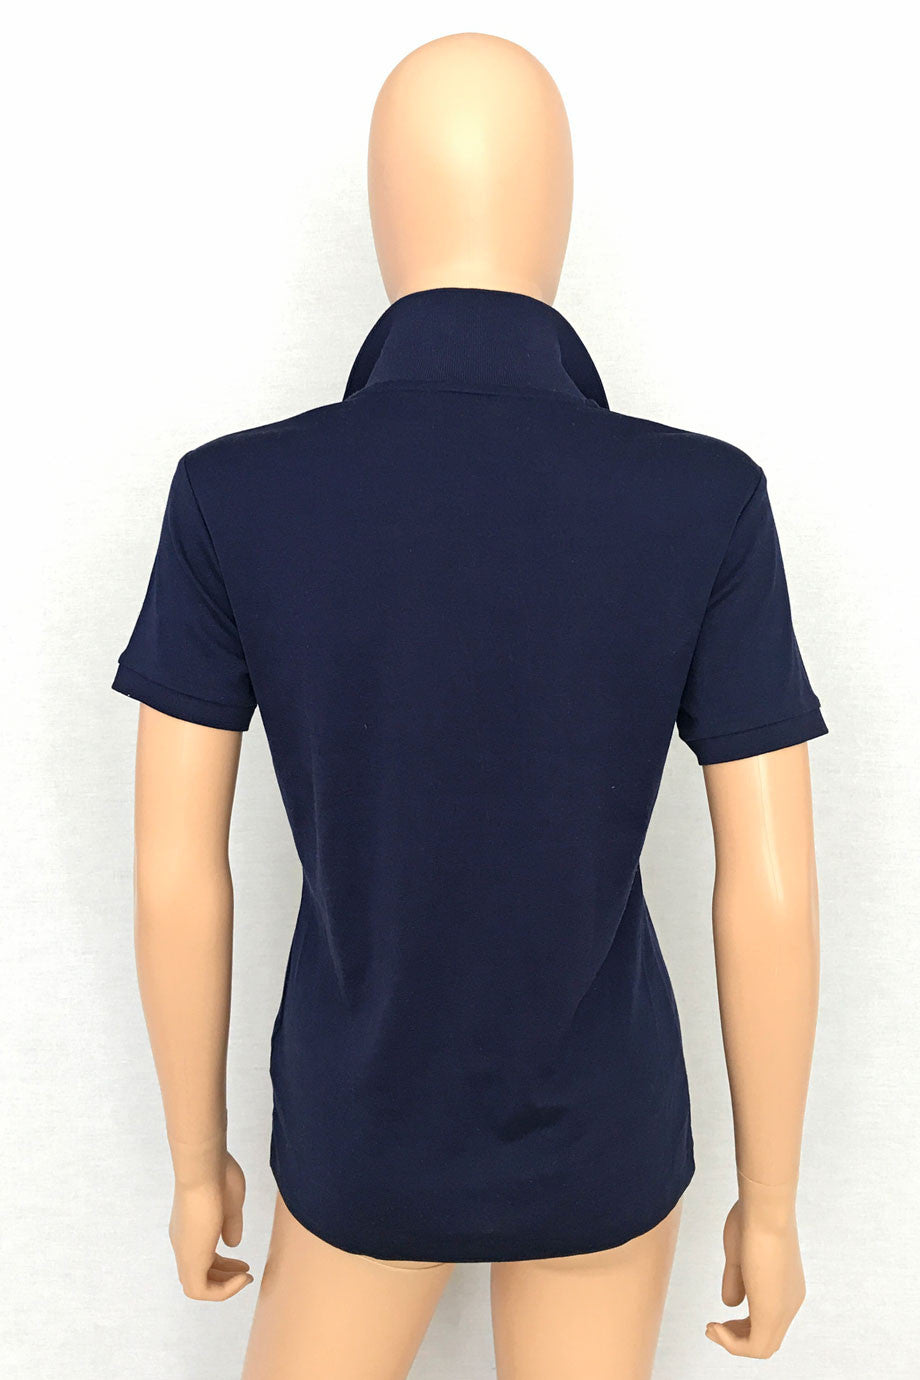 Ralph Lauren Black Label Navy Blue Cotton Polo Shirt / Sz L-Style Therapy